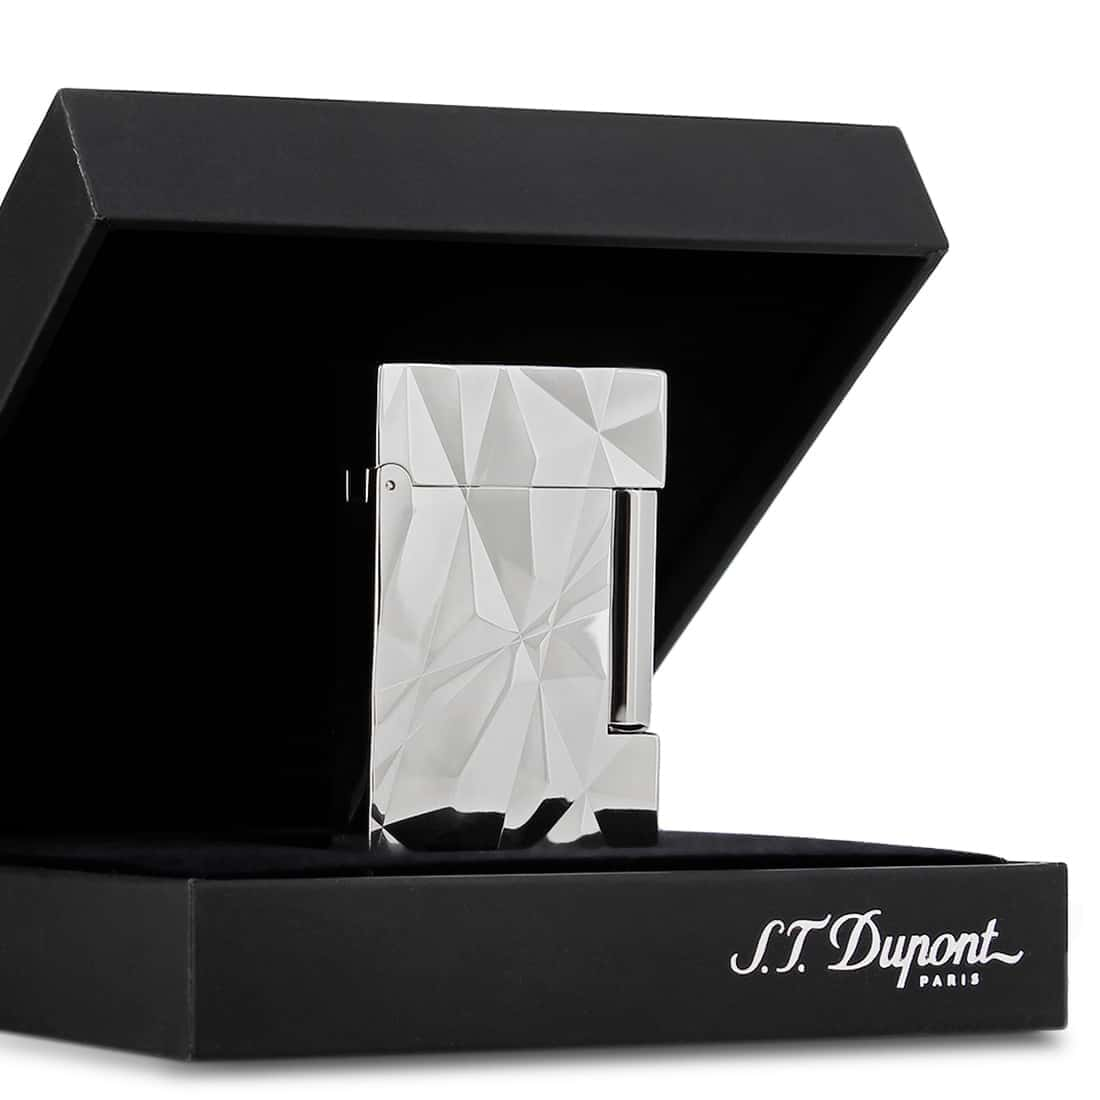 S.T. Dupont Crazy Diamonds